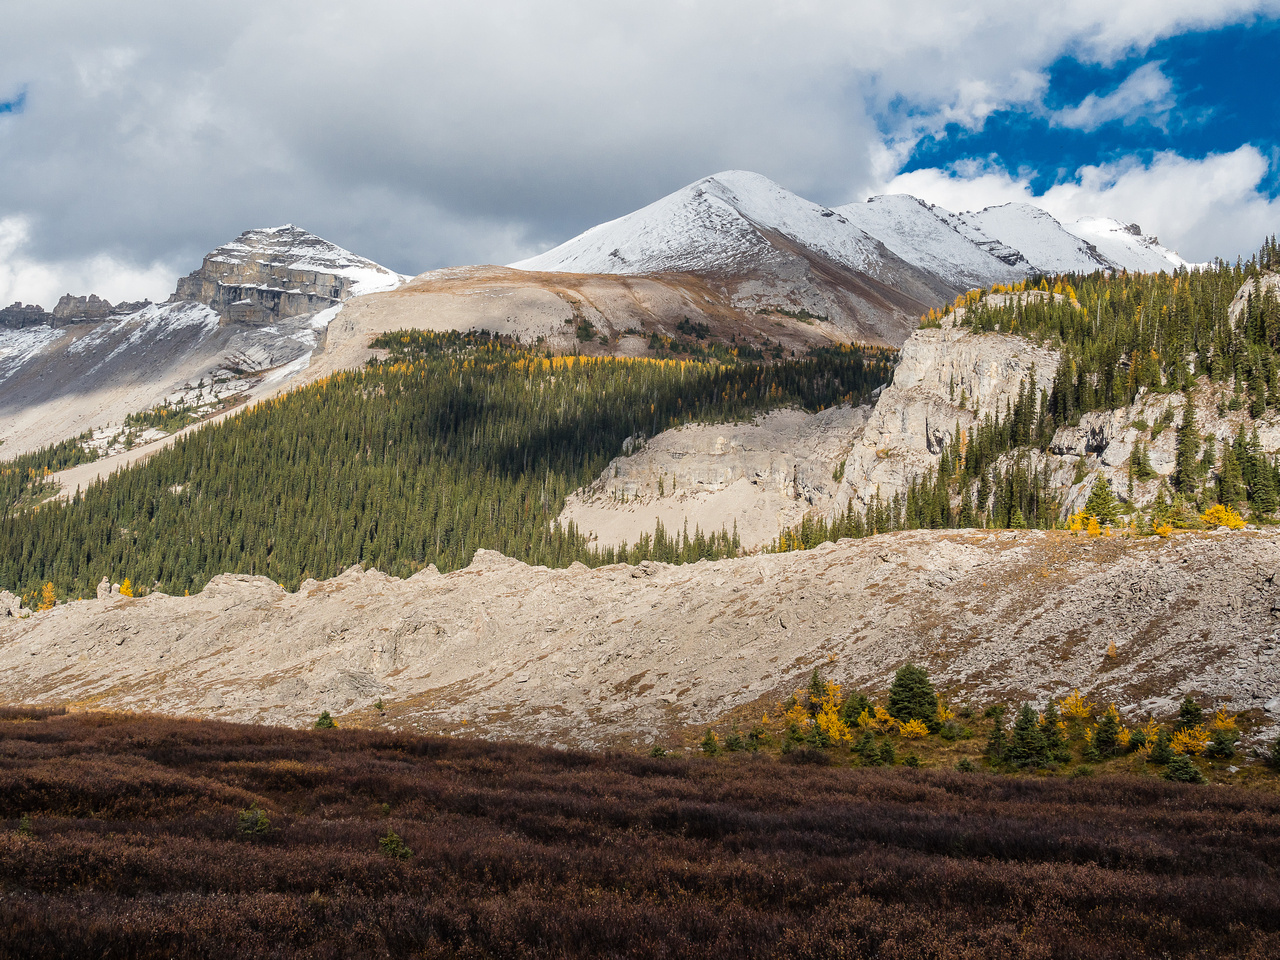 Looking back at Windy Point Ridge (L) and Og Mountain (R).